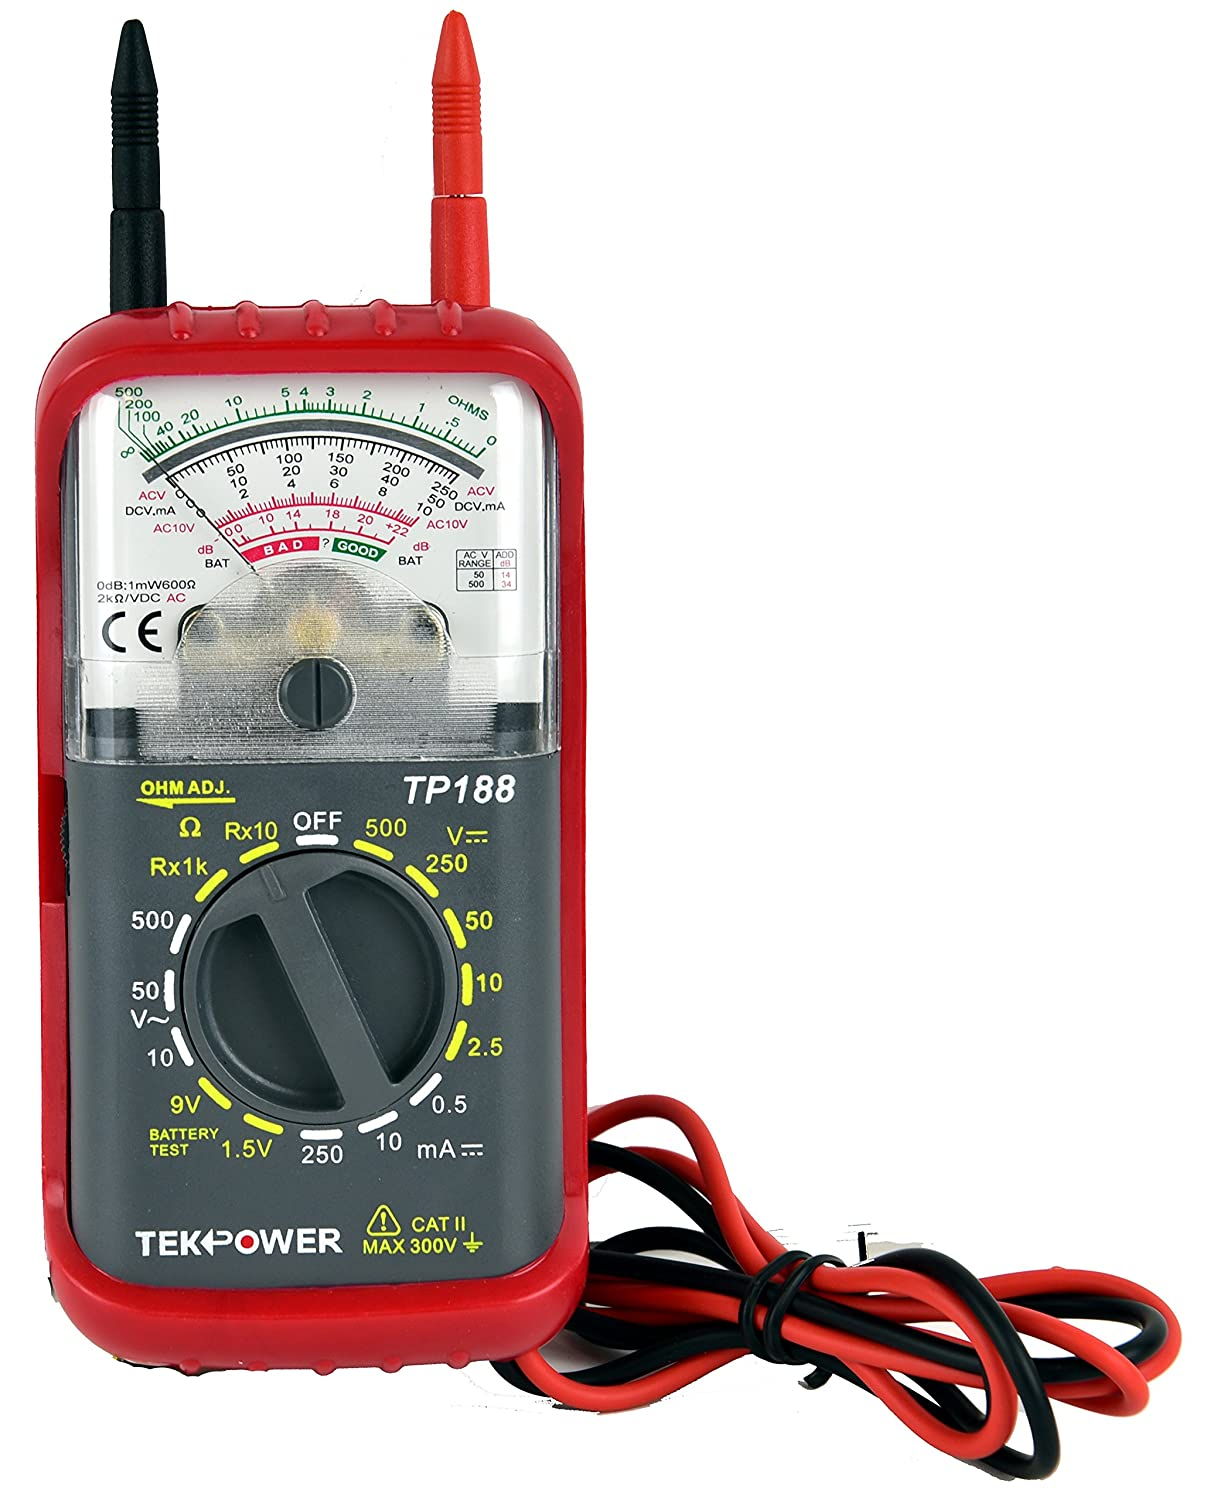 Amazon.com: Tekpower TP188 Pocket-size Analog Multimeter with Built ...